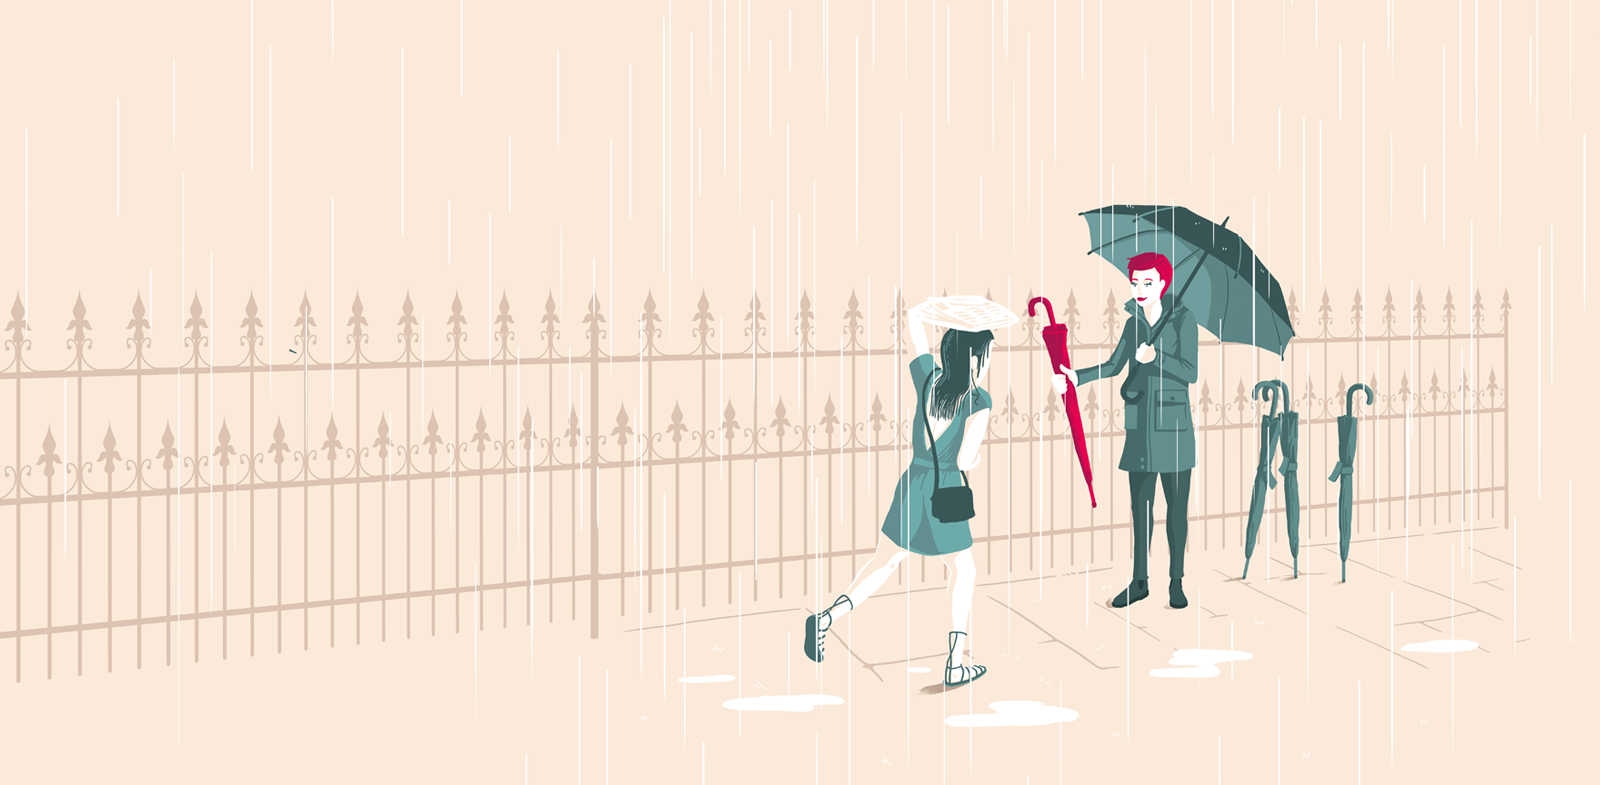 A soaking-wet woman runs in the rain towards another women, who is holding out a red umbrella to offer her.